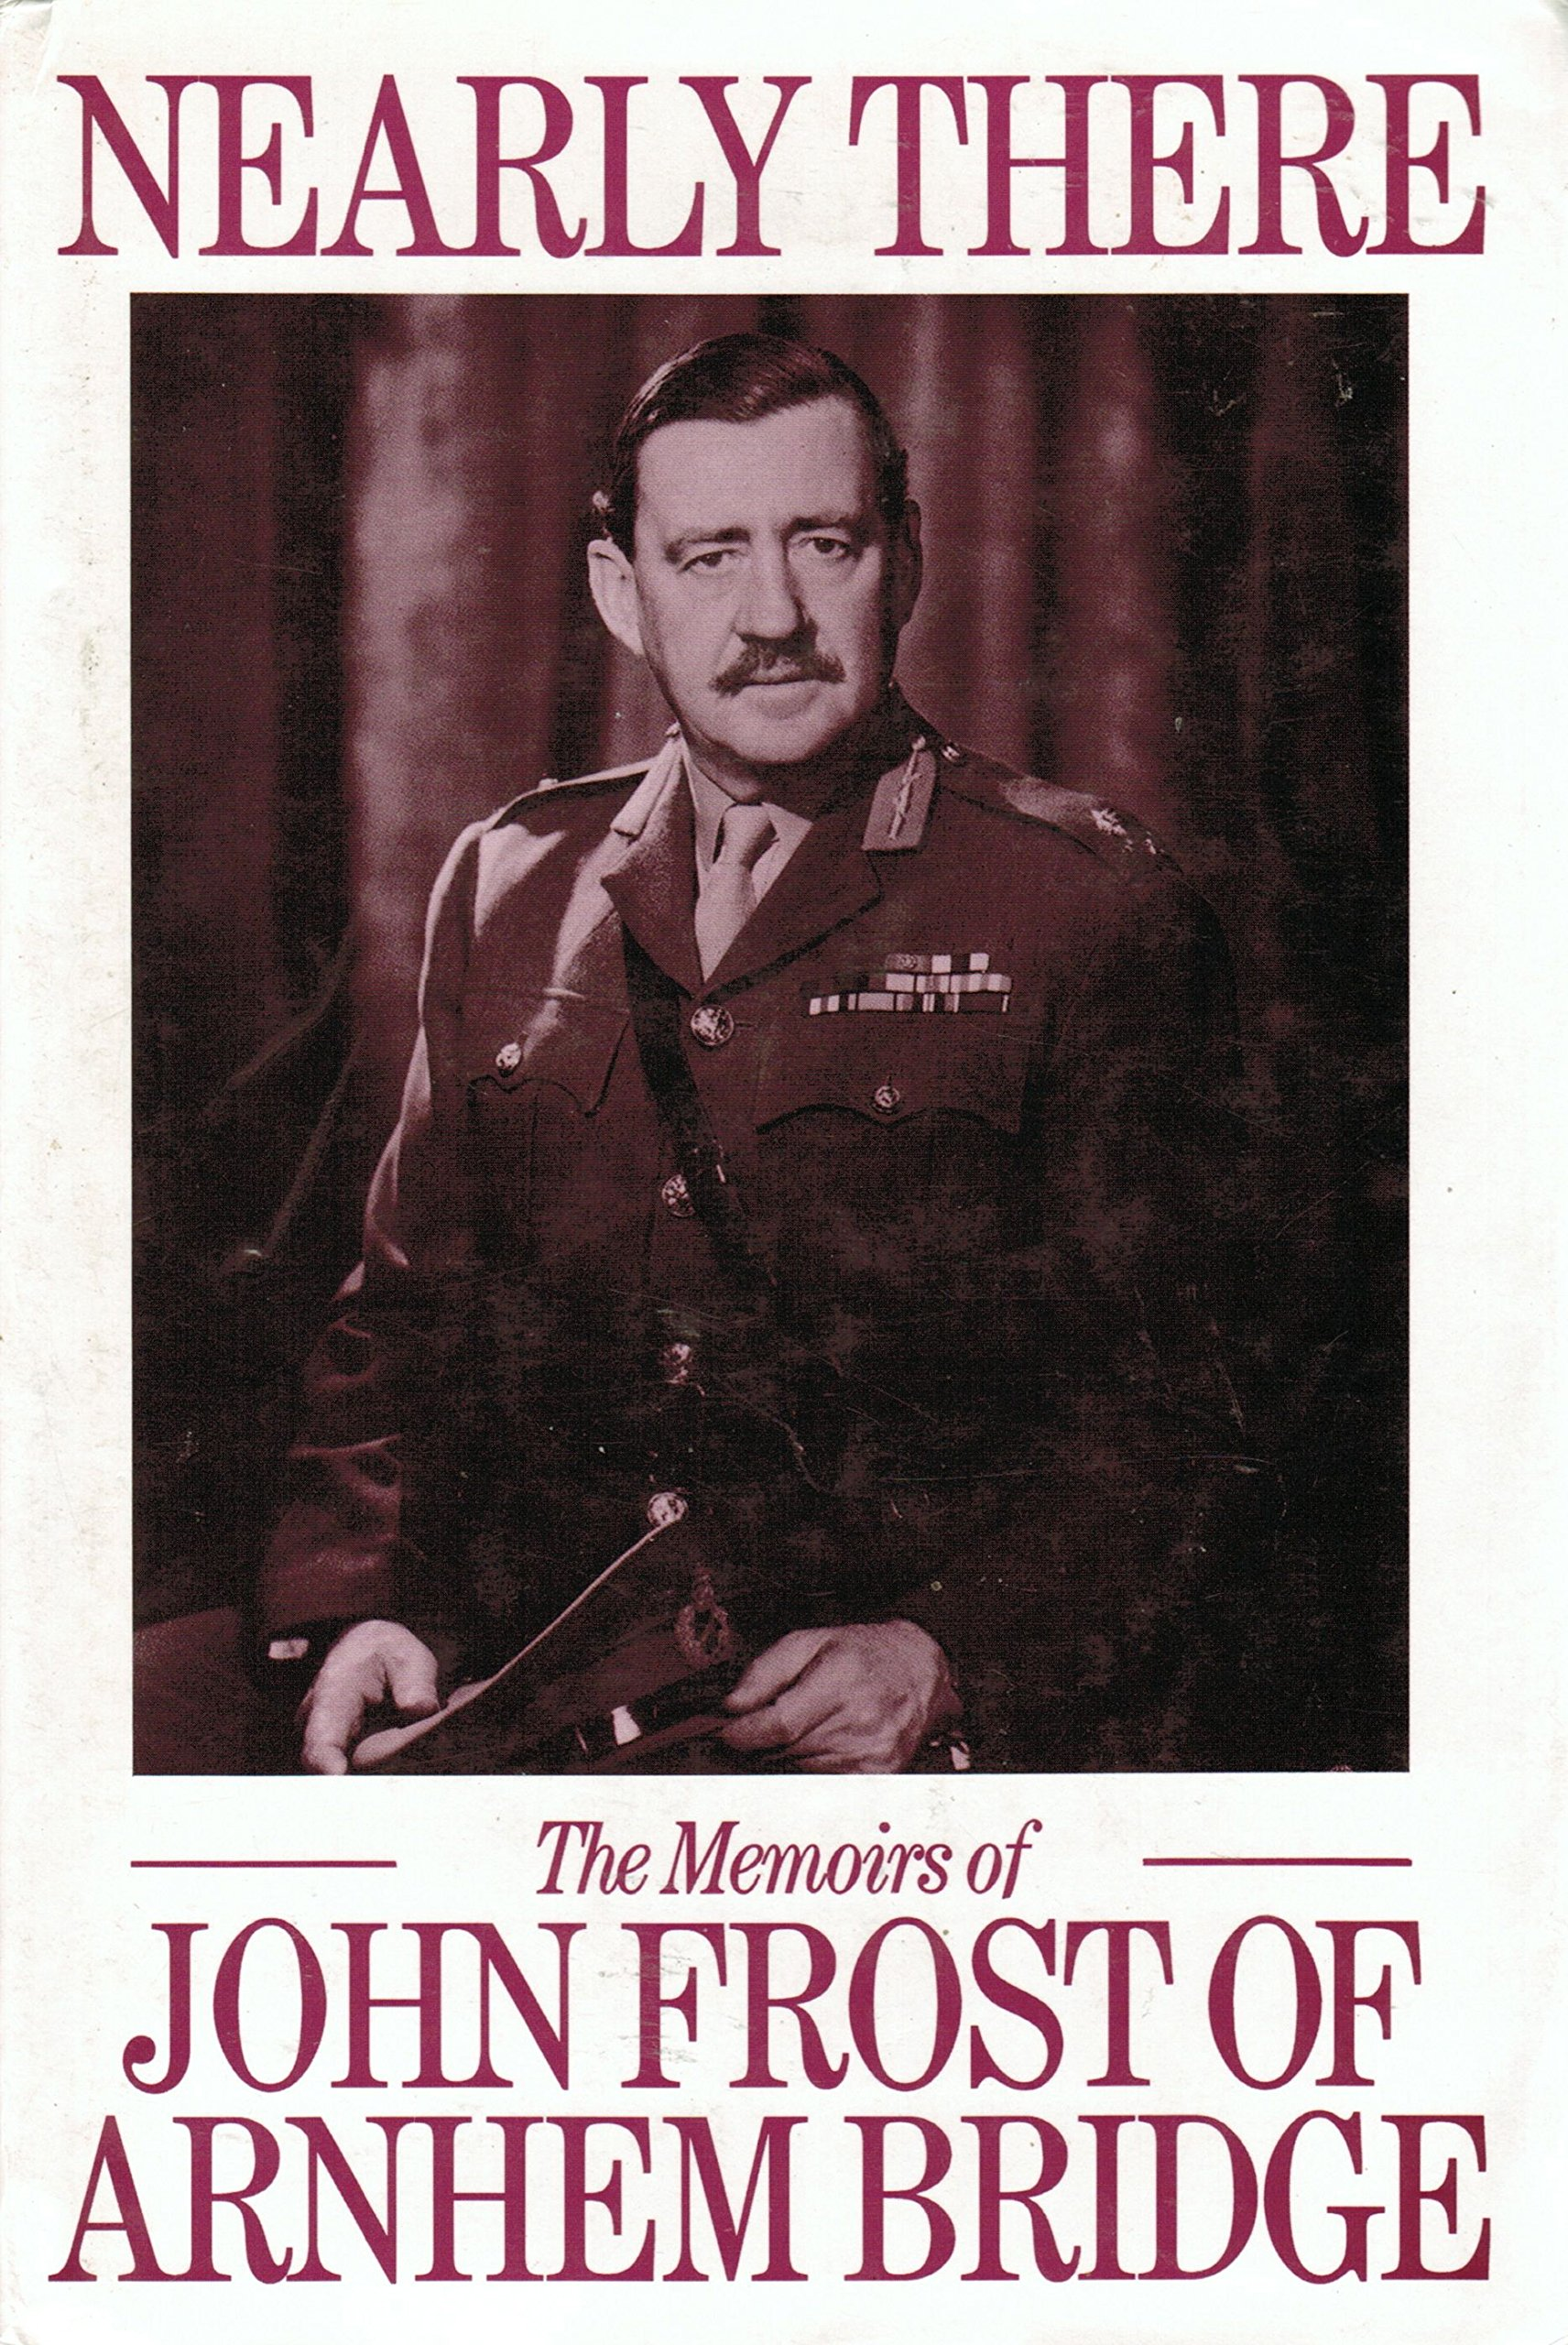 Nearly There: Some Memoirs by John Frost of Arnhem Bridge